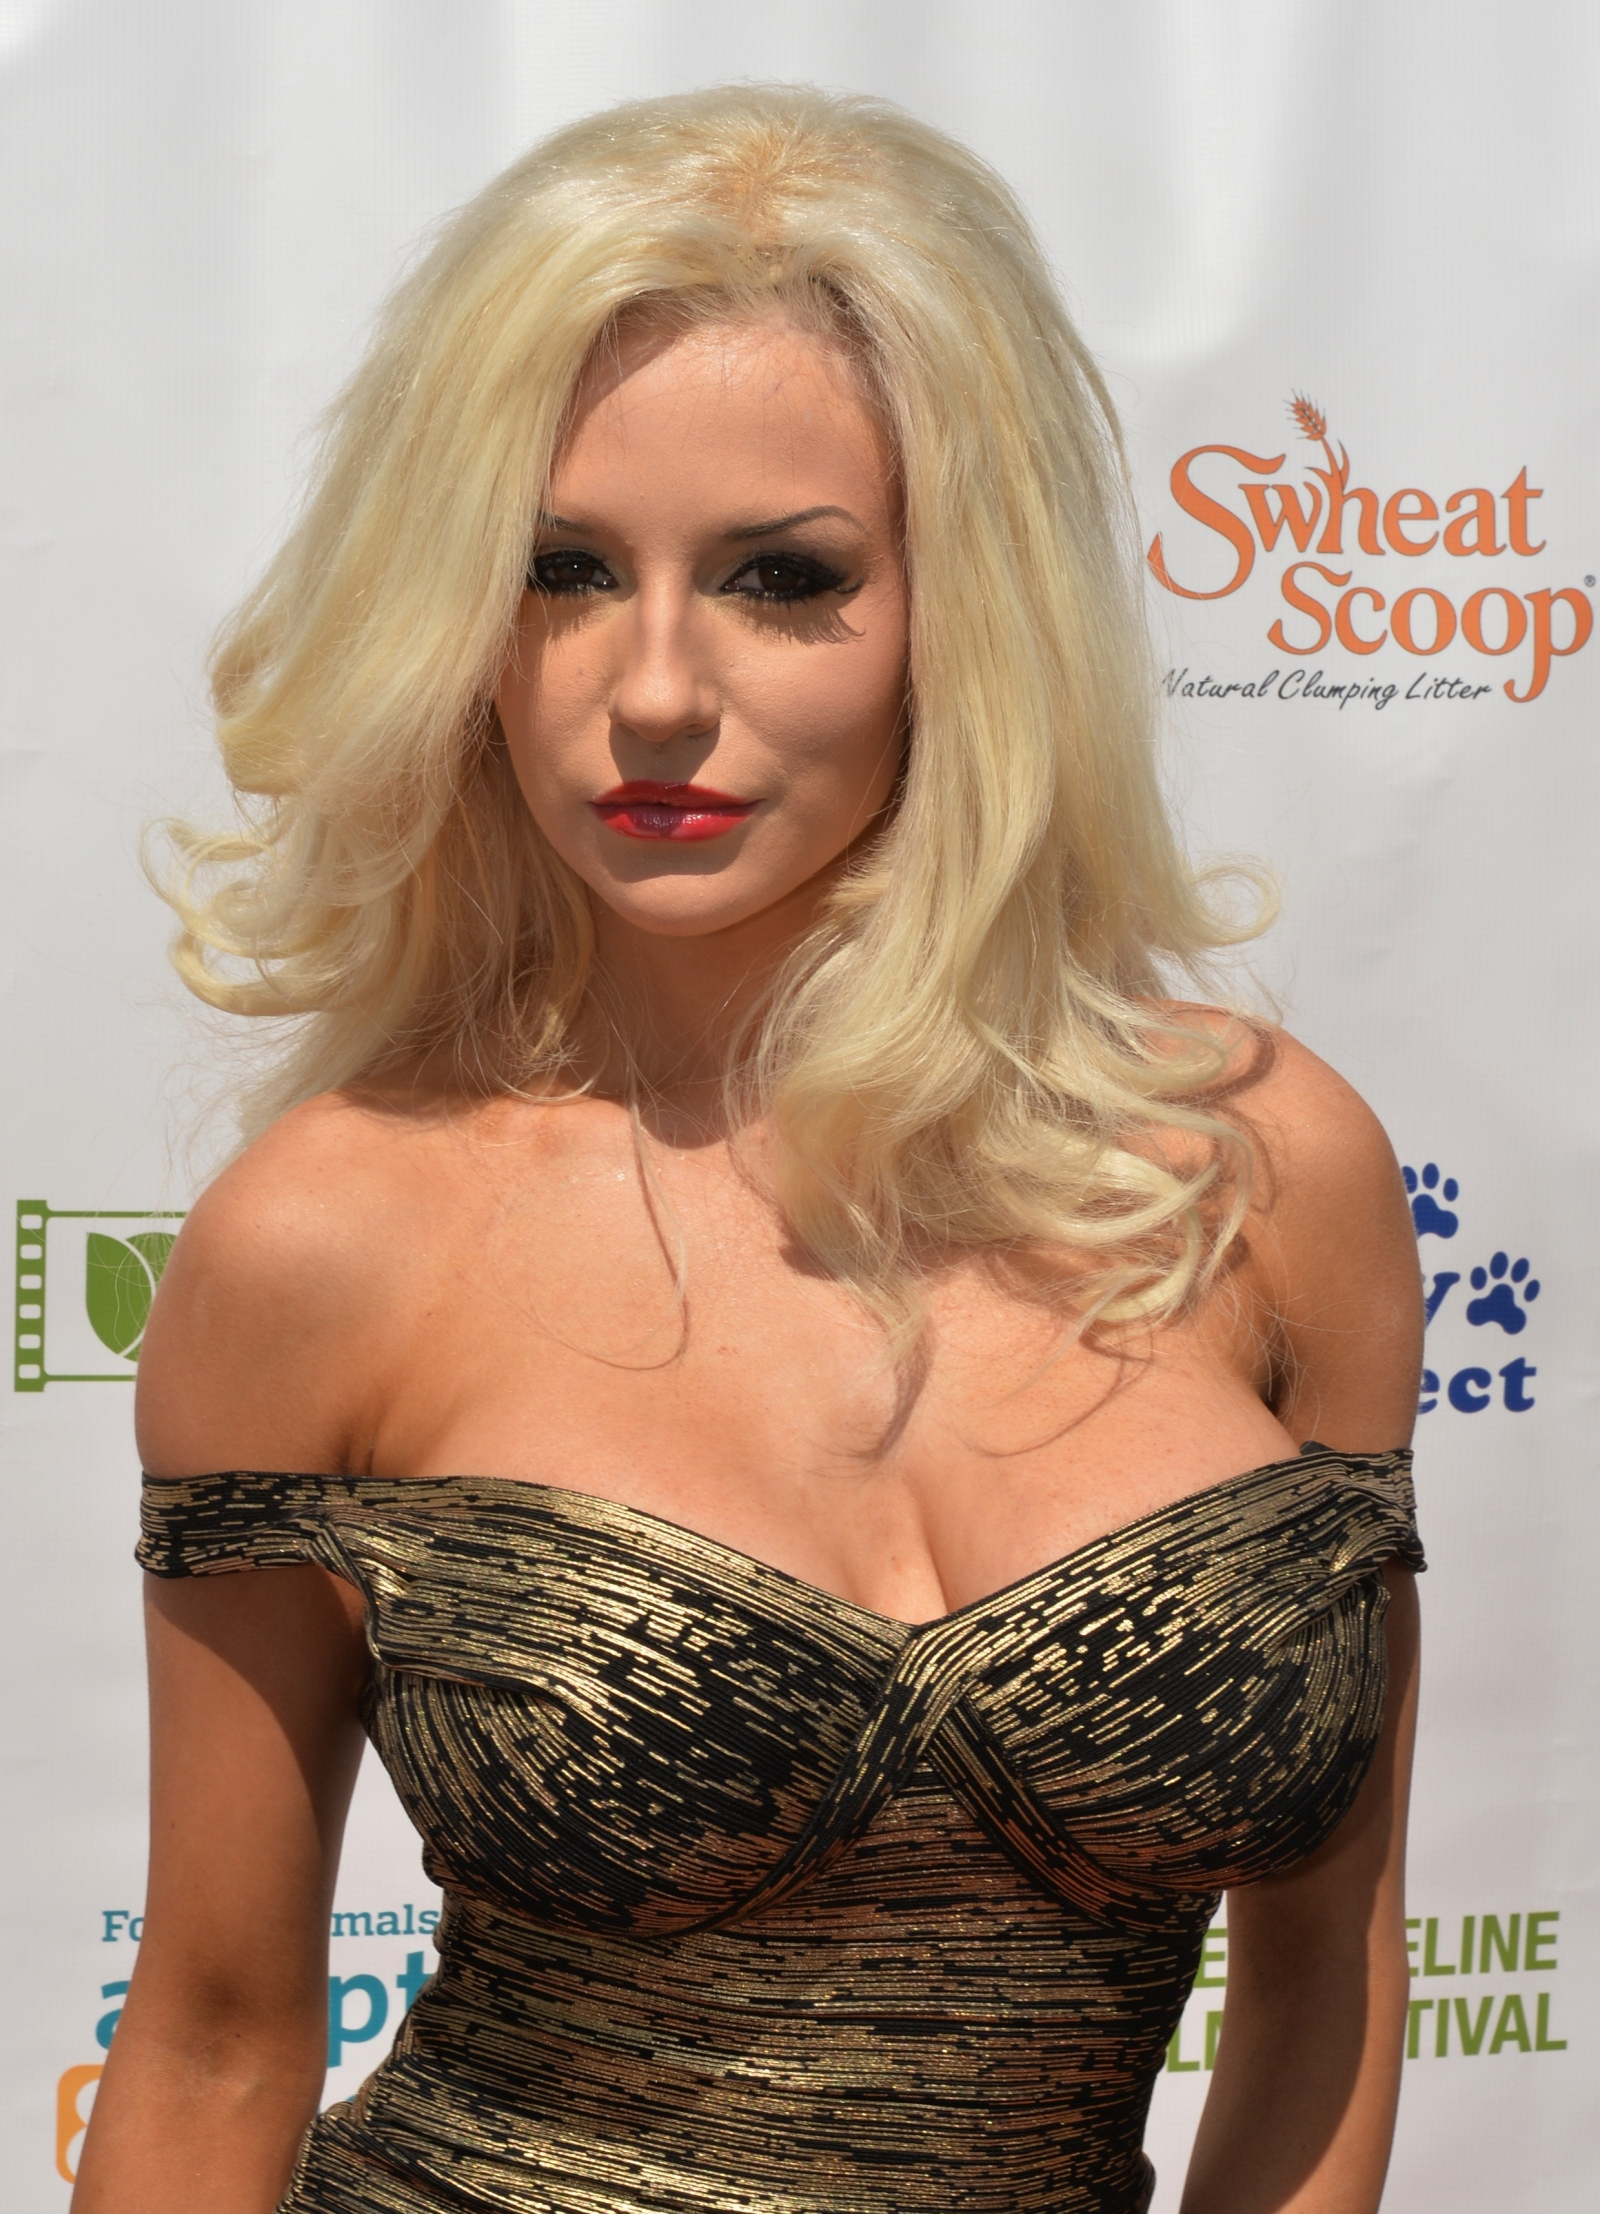 Courtney stodden shows off her boobs and butt onlyfans 5 pics video